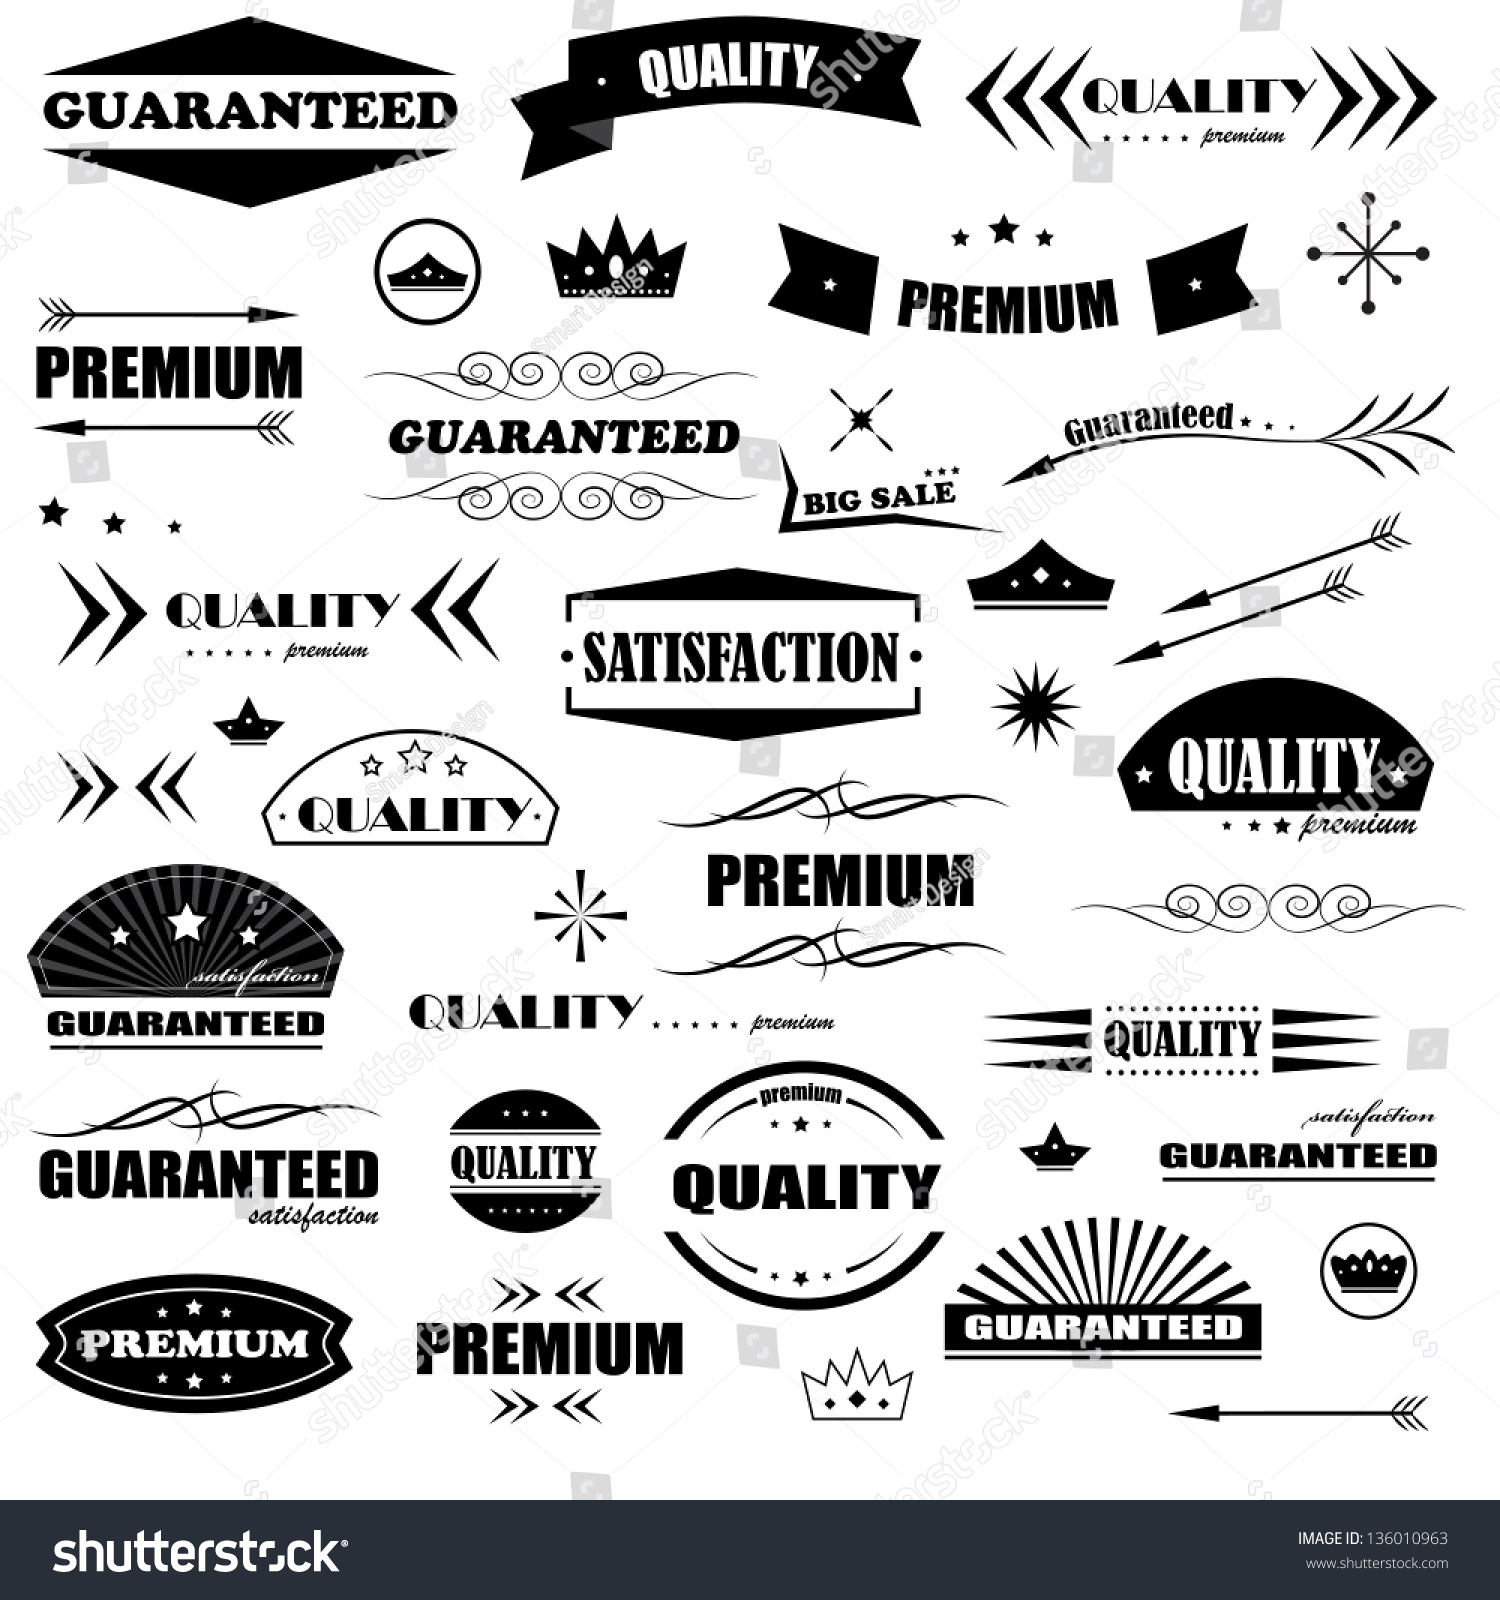 Vintage Design Elements Labels Retro Vintage Stock Vector ...